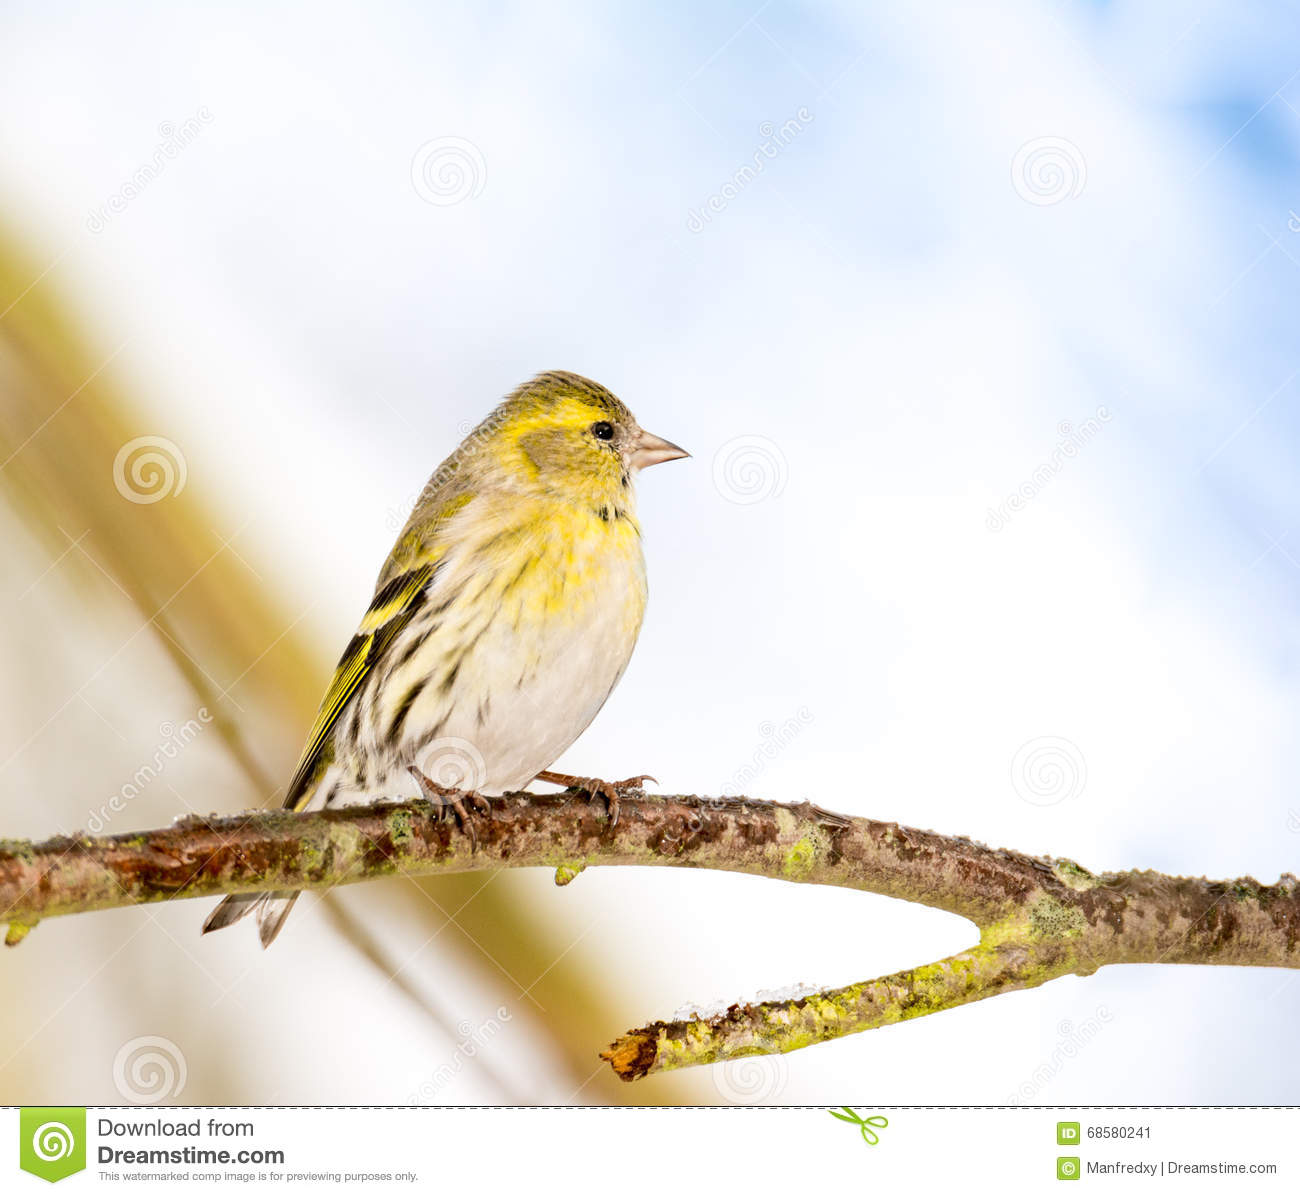 Eurasian Siskin clipart #4, Download drawings